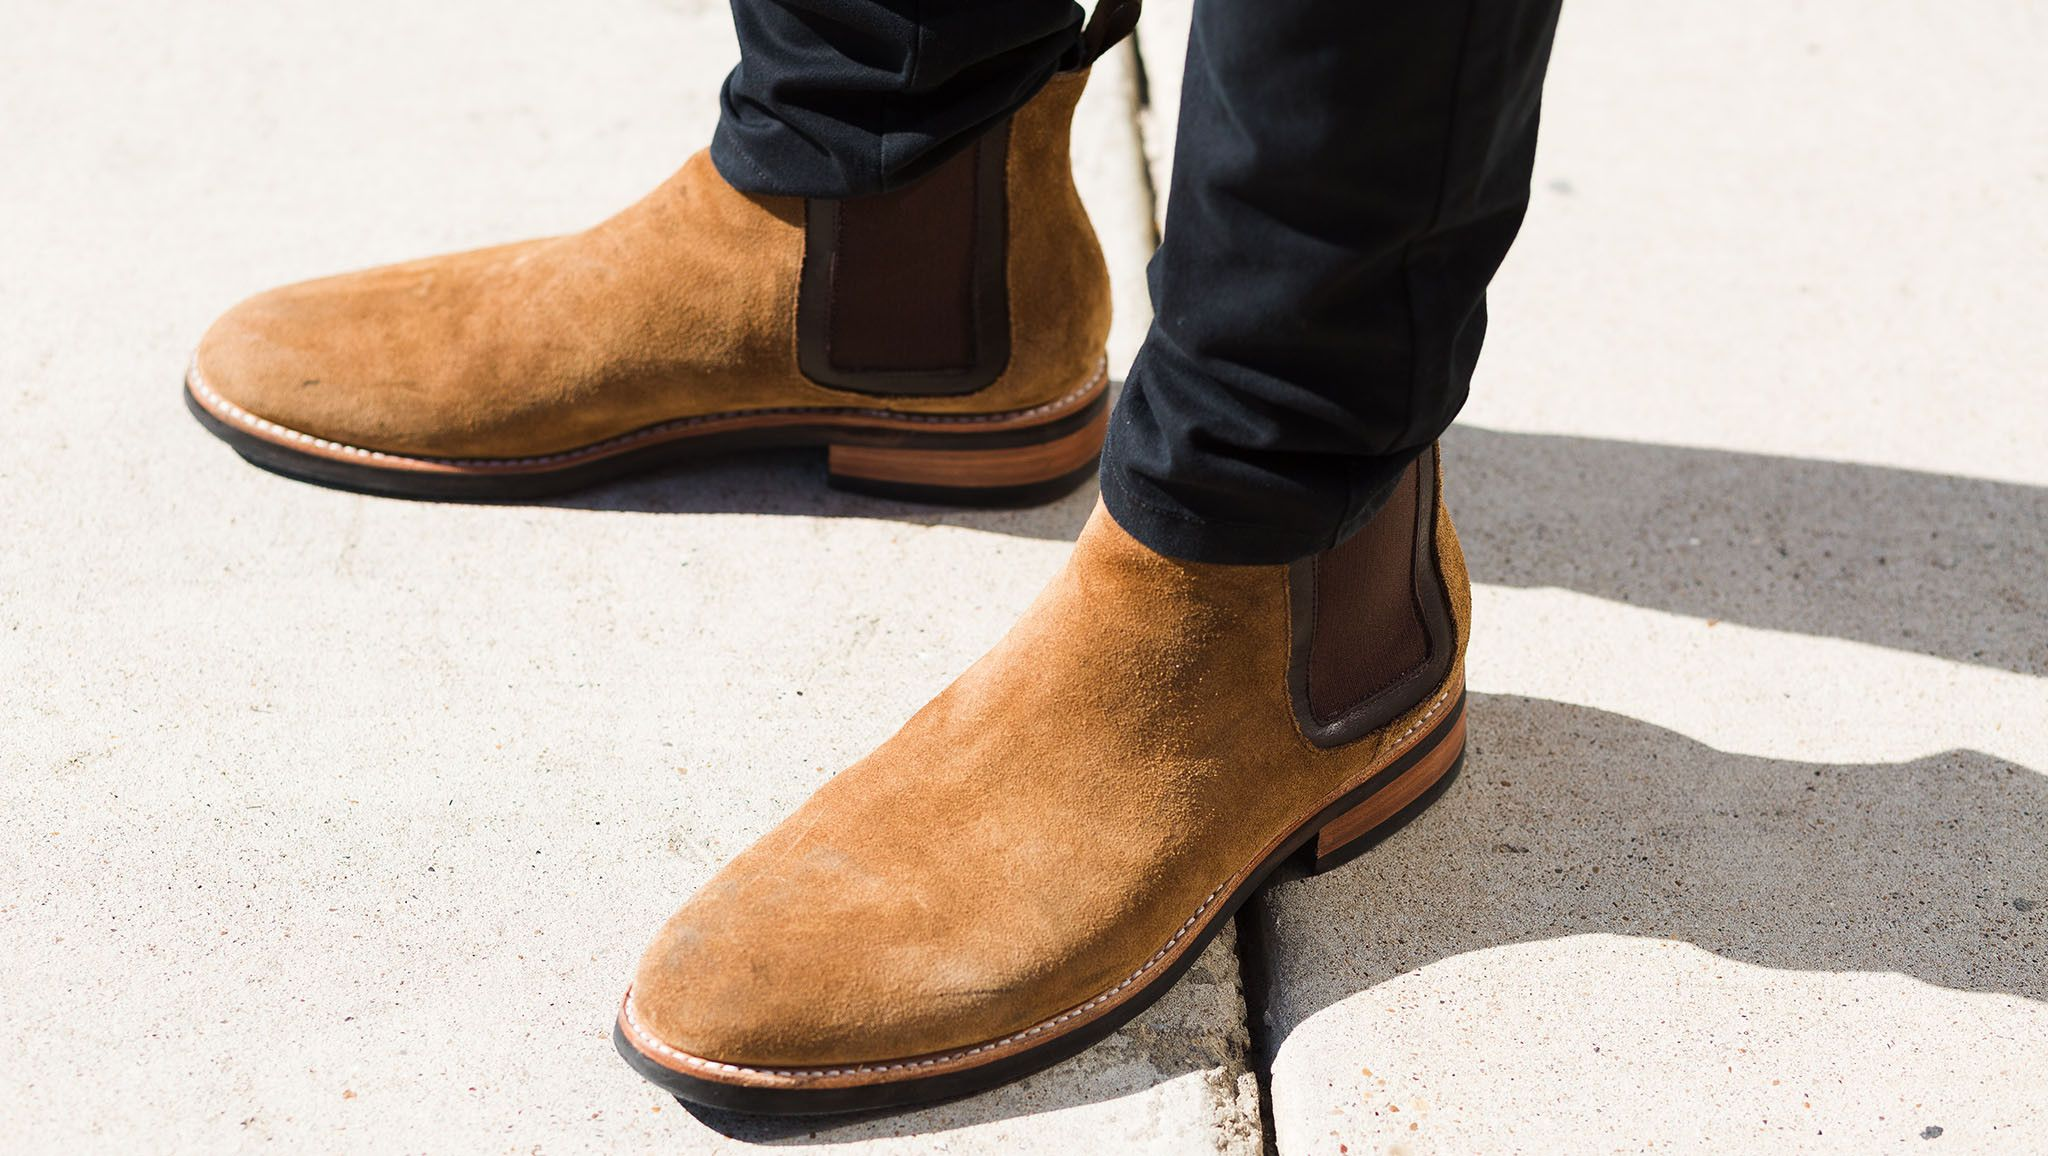 c4db14f4a598c Honey Suede Duke Boot | Suede | Boots, Sneaker boots, Shoes